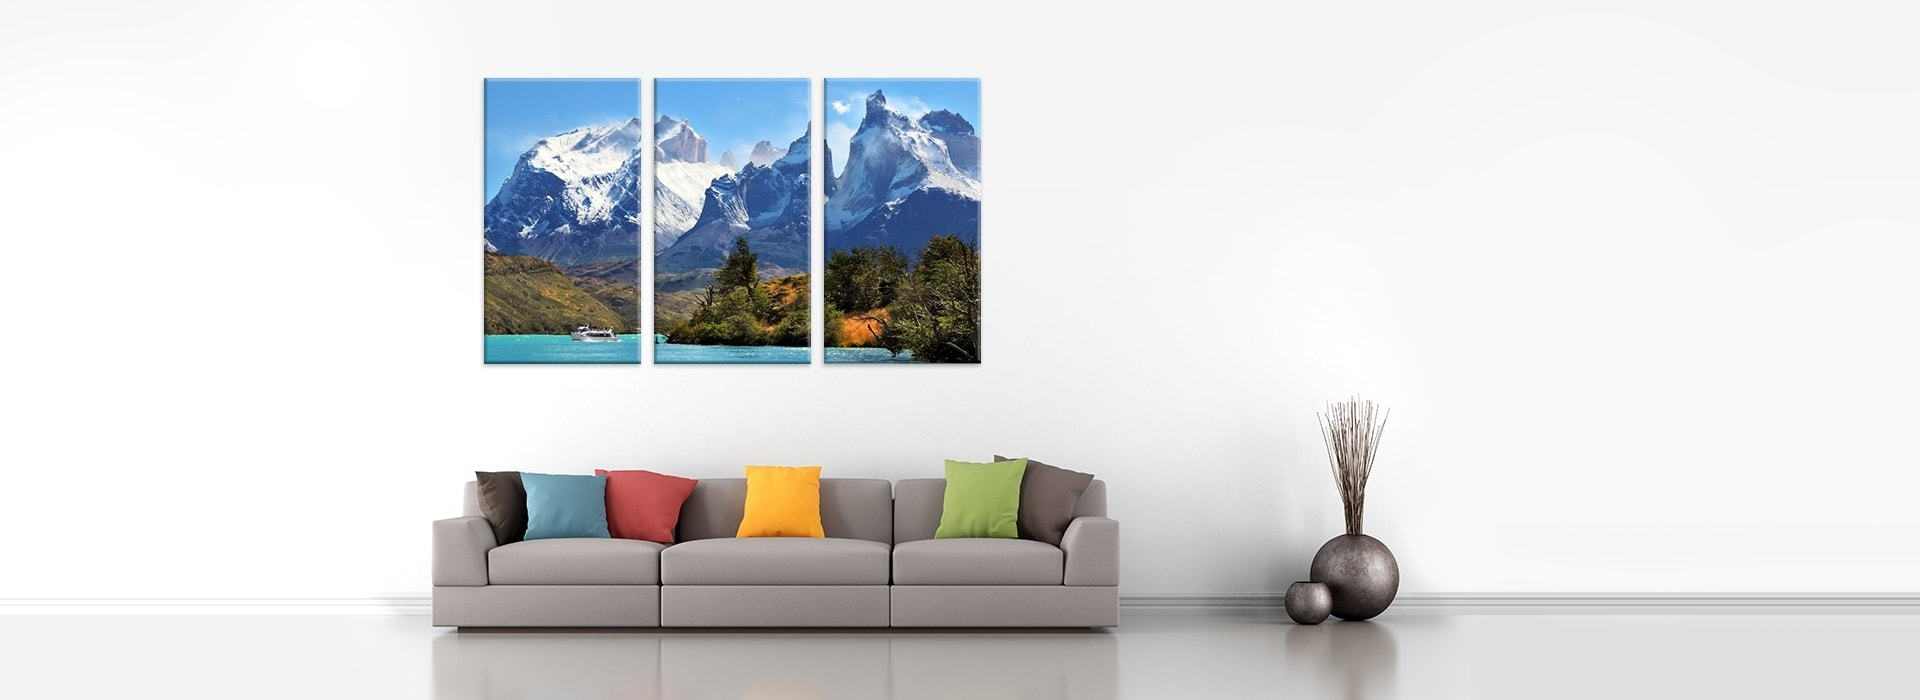 Canvas Wall Art In Australia Within Fashionable Canvas Prints (View 6 of 15)